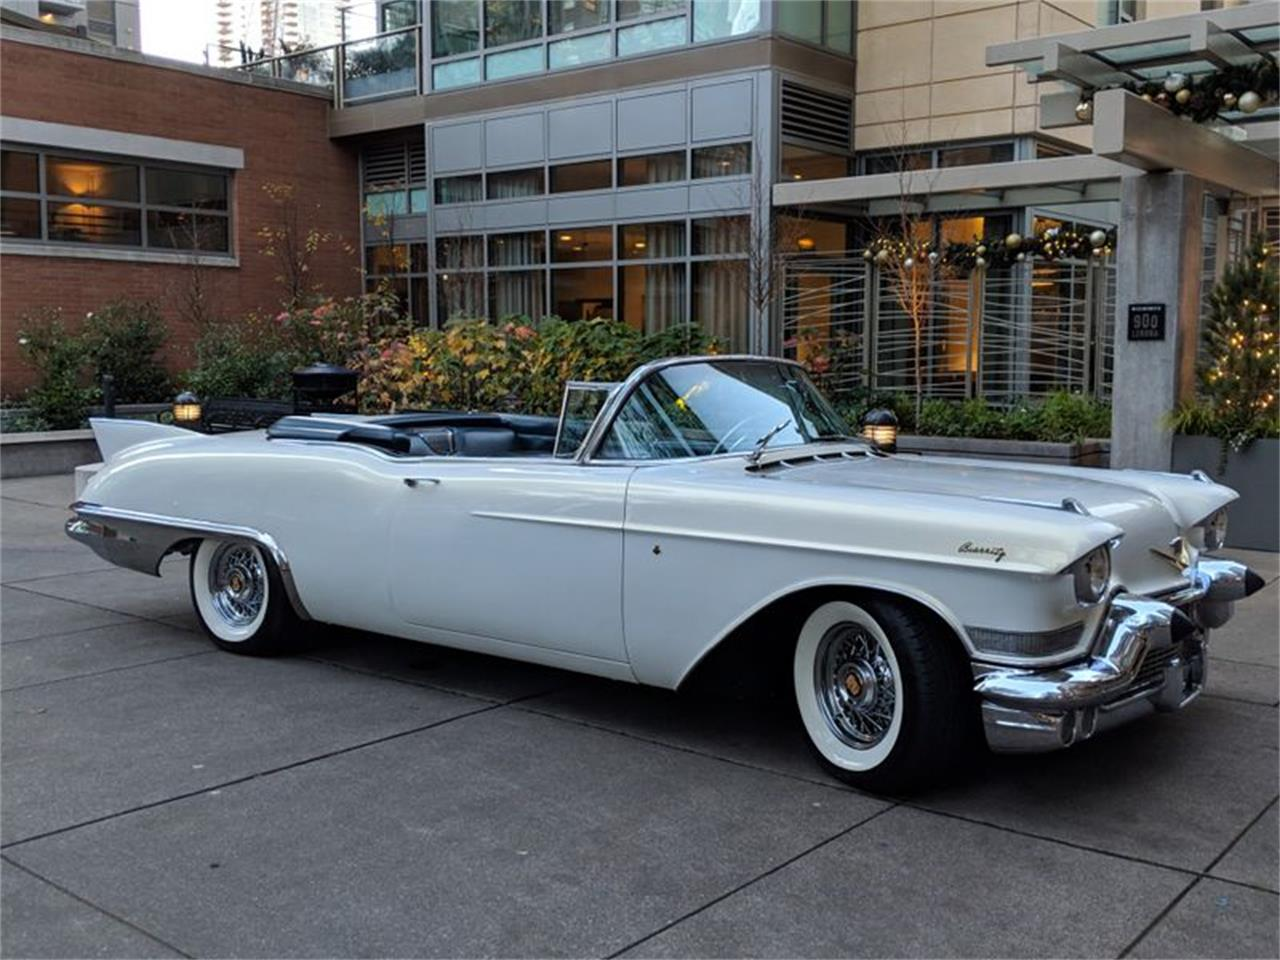 Large Picture of 1957 Cadillac Eldorado Biarritz located in Washington Auction Vehicle Offered by Lucky Collector Car Auctions - QQVD